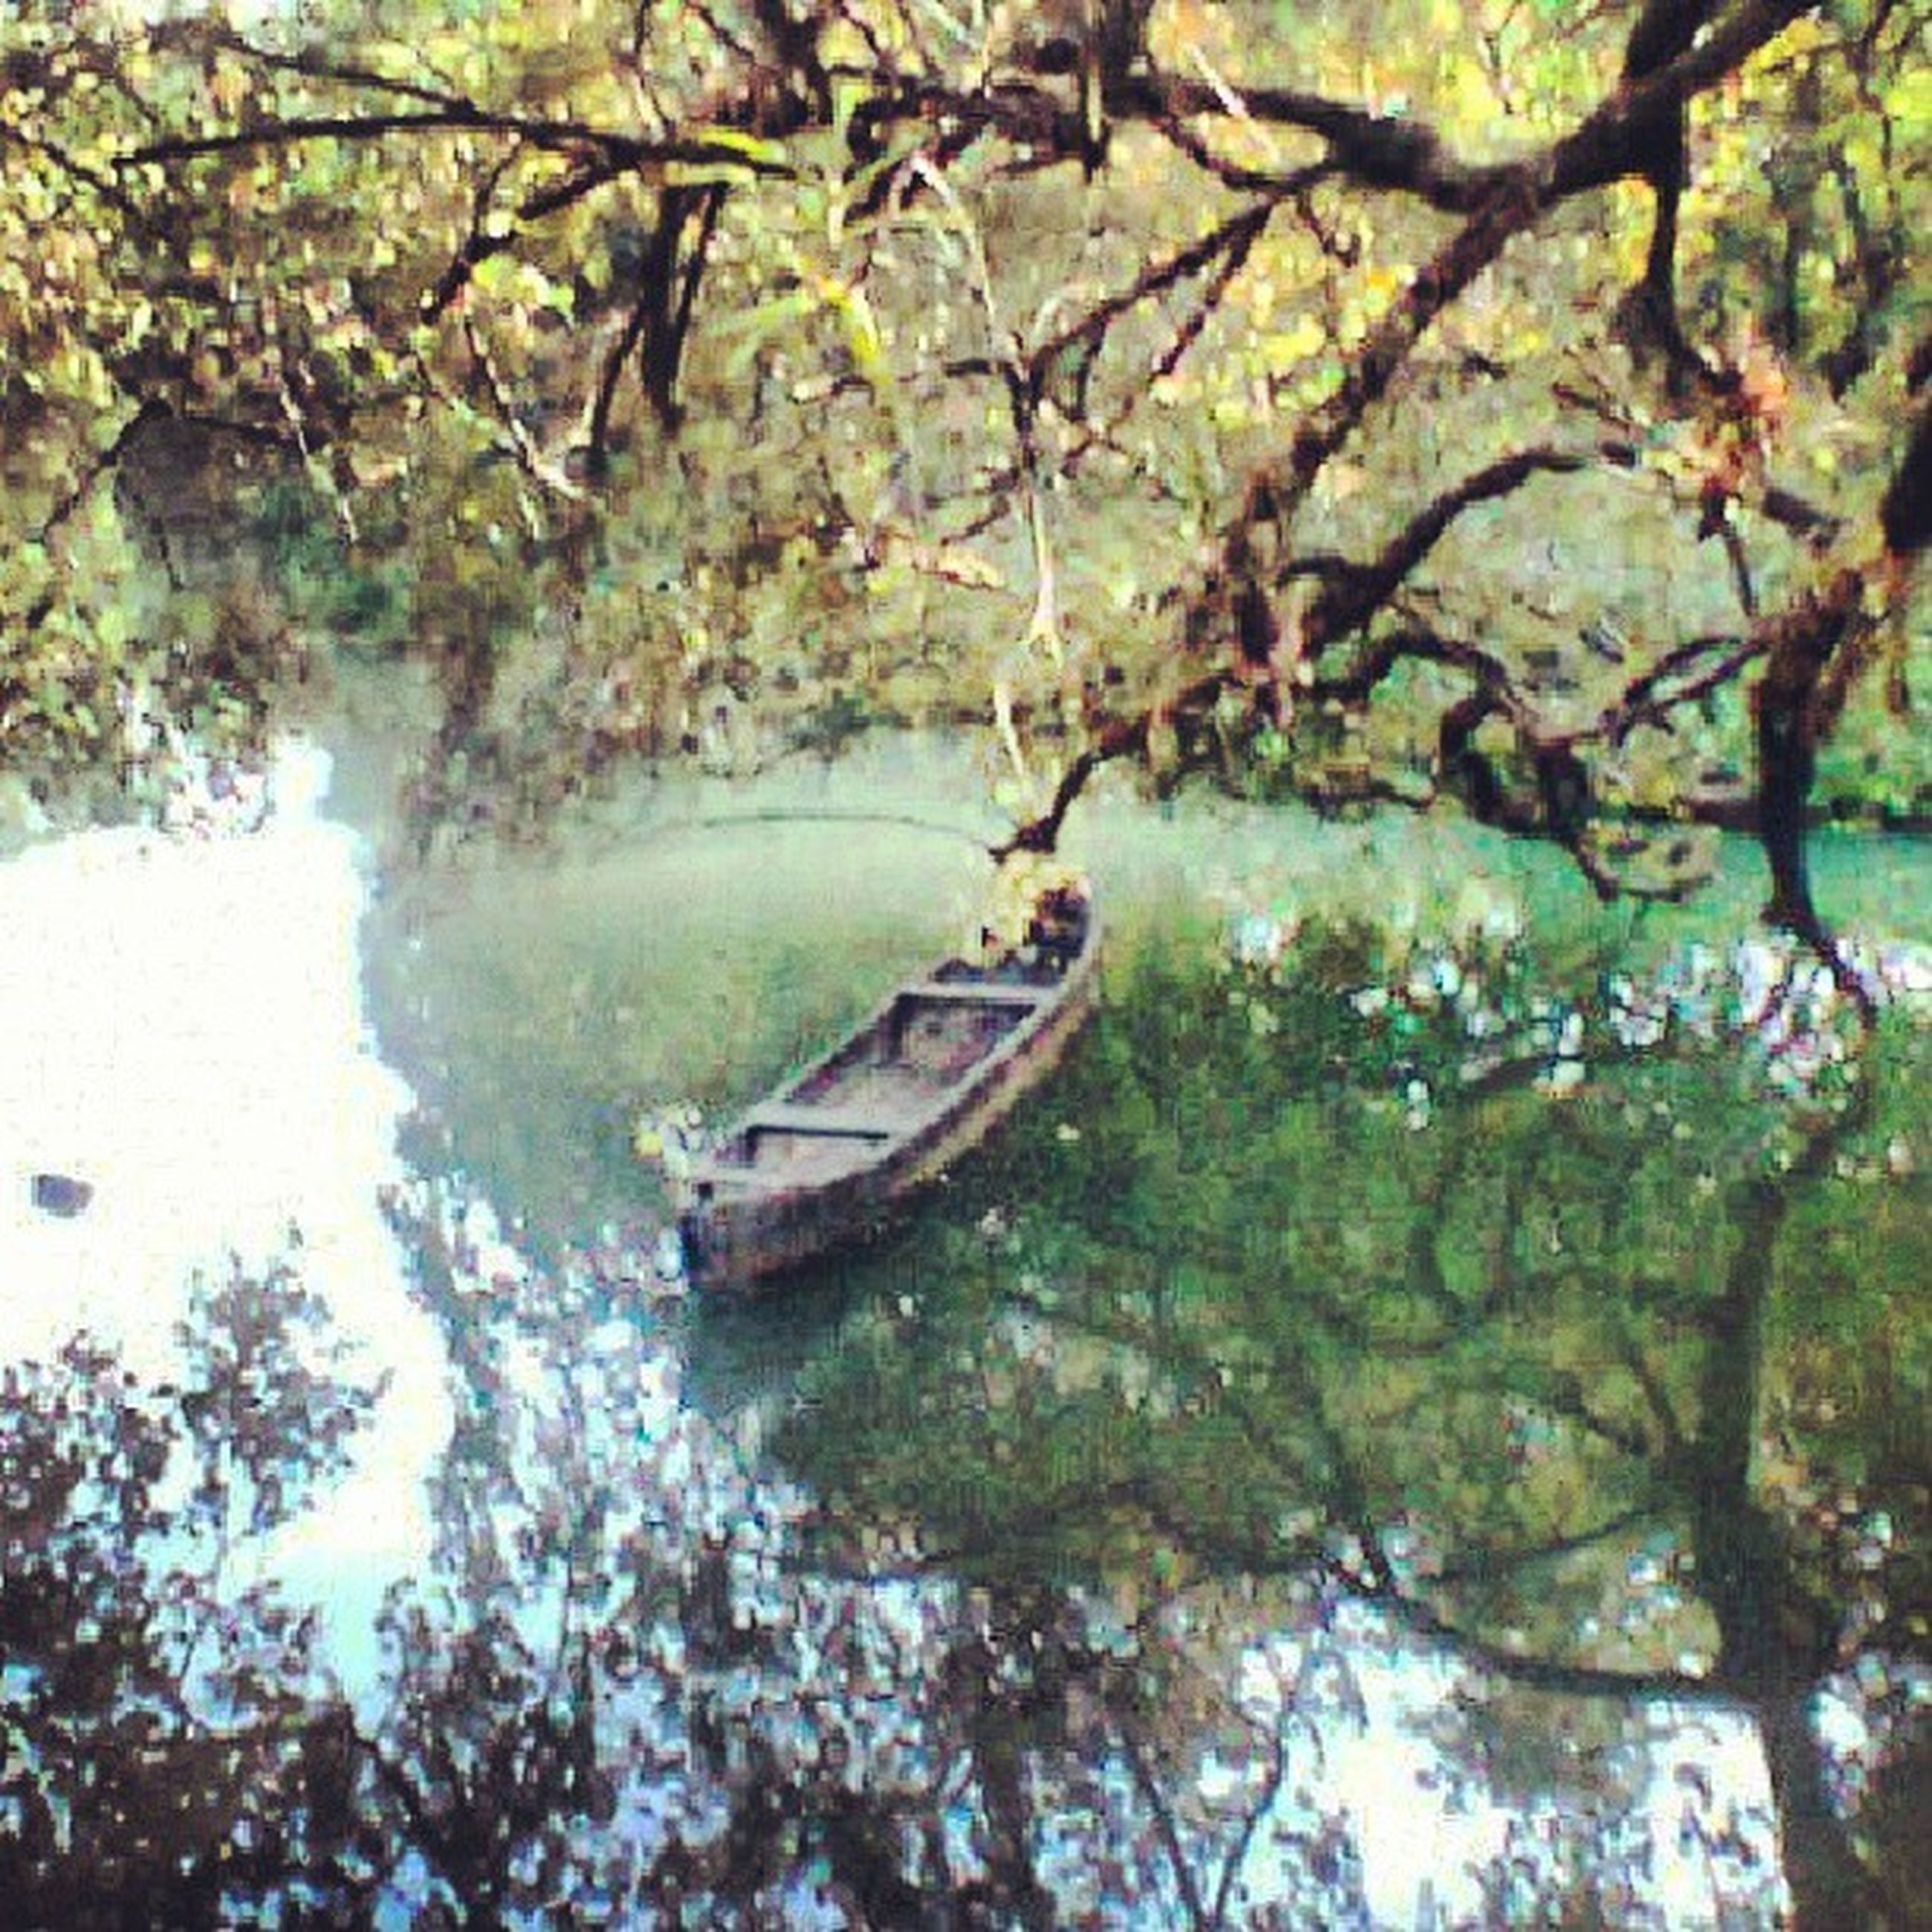 tree, water, branch, lake, nature, tranquility, reflection, beauty in nature, tranquil scene, boat, growth, nautical vessel, green color, day, river, transportation, forest, outdoors, waterfront, scenics